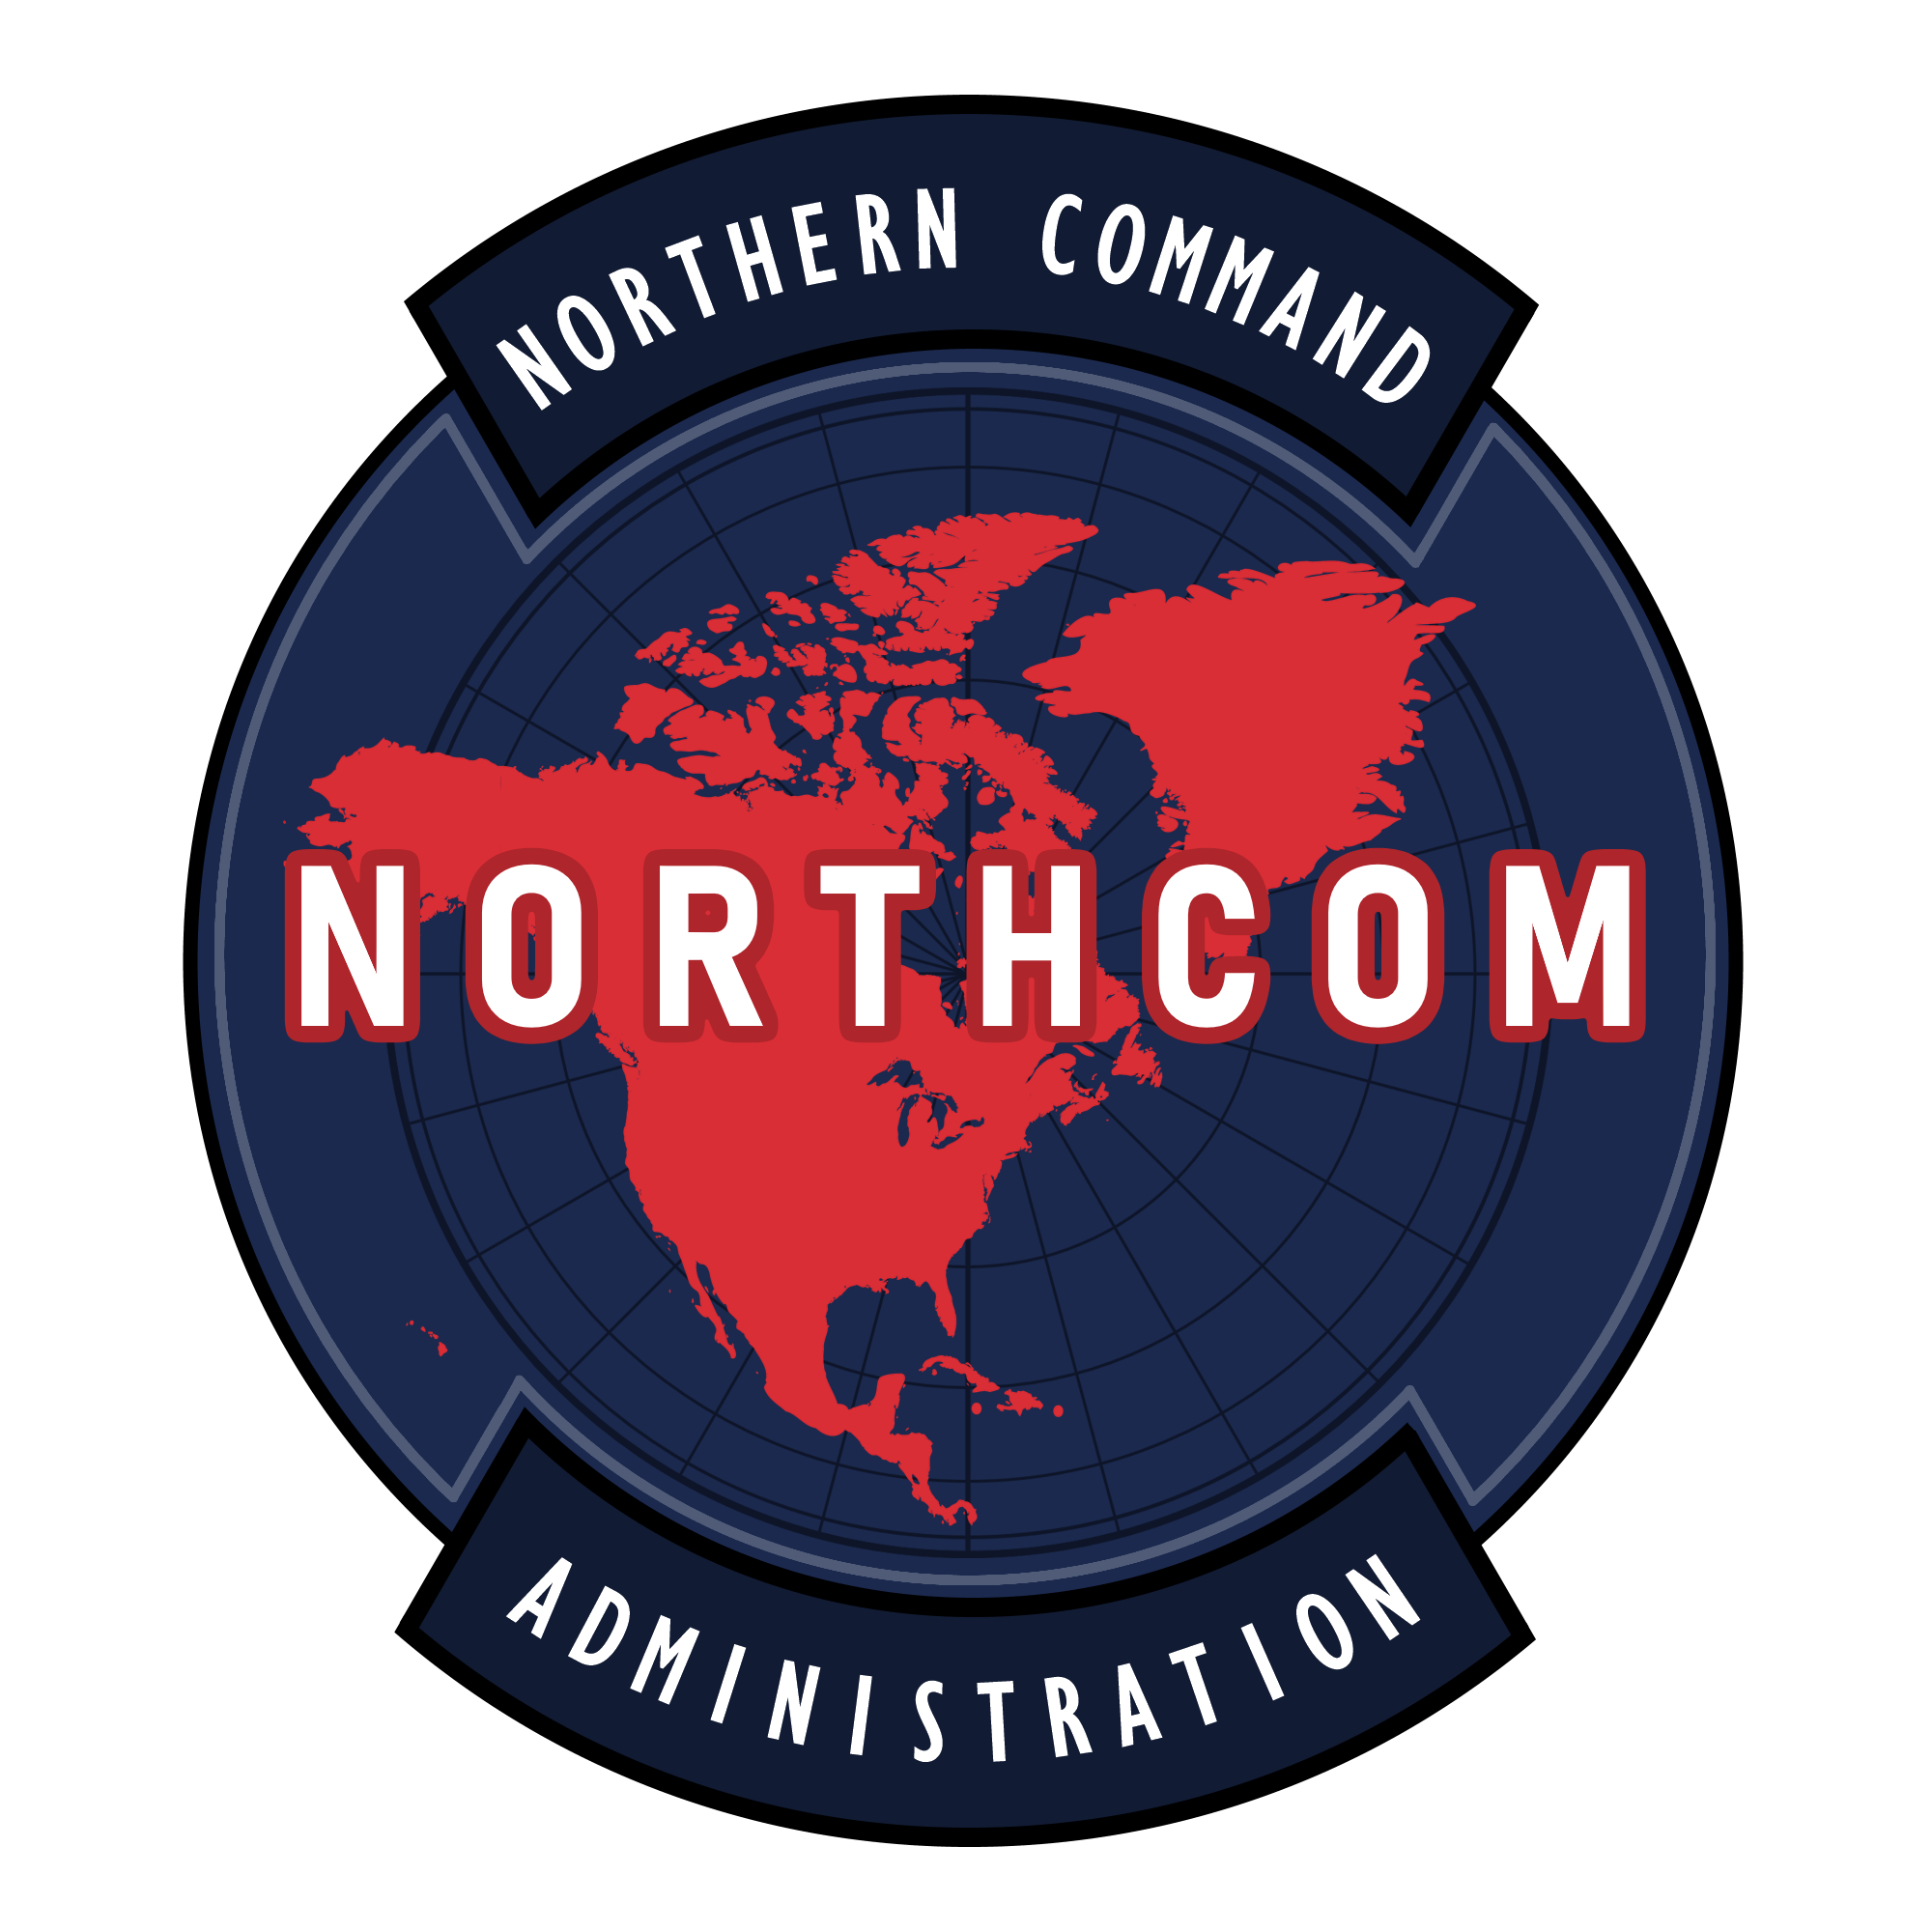 %5B2020%5D%20Northern%20Command.png